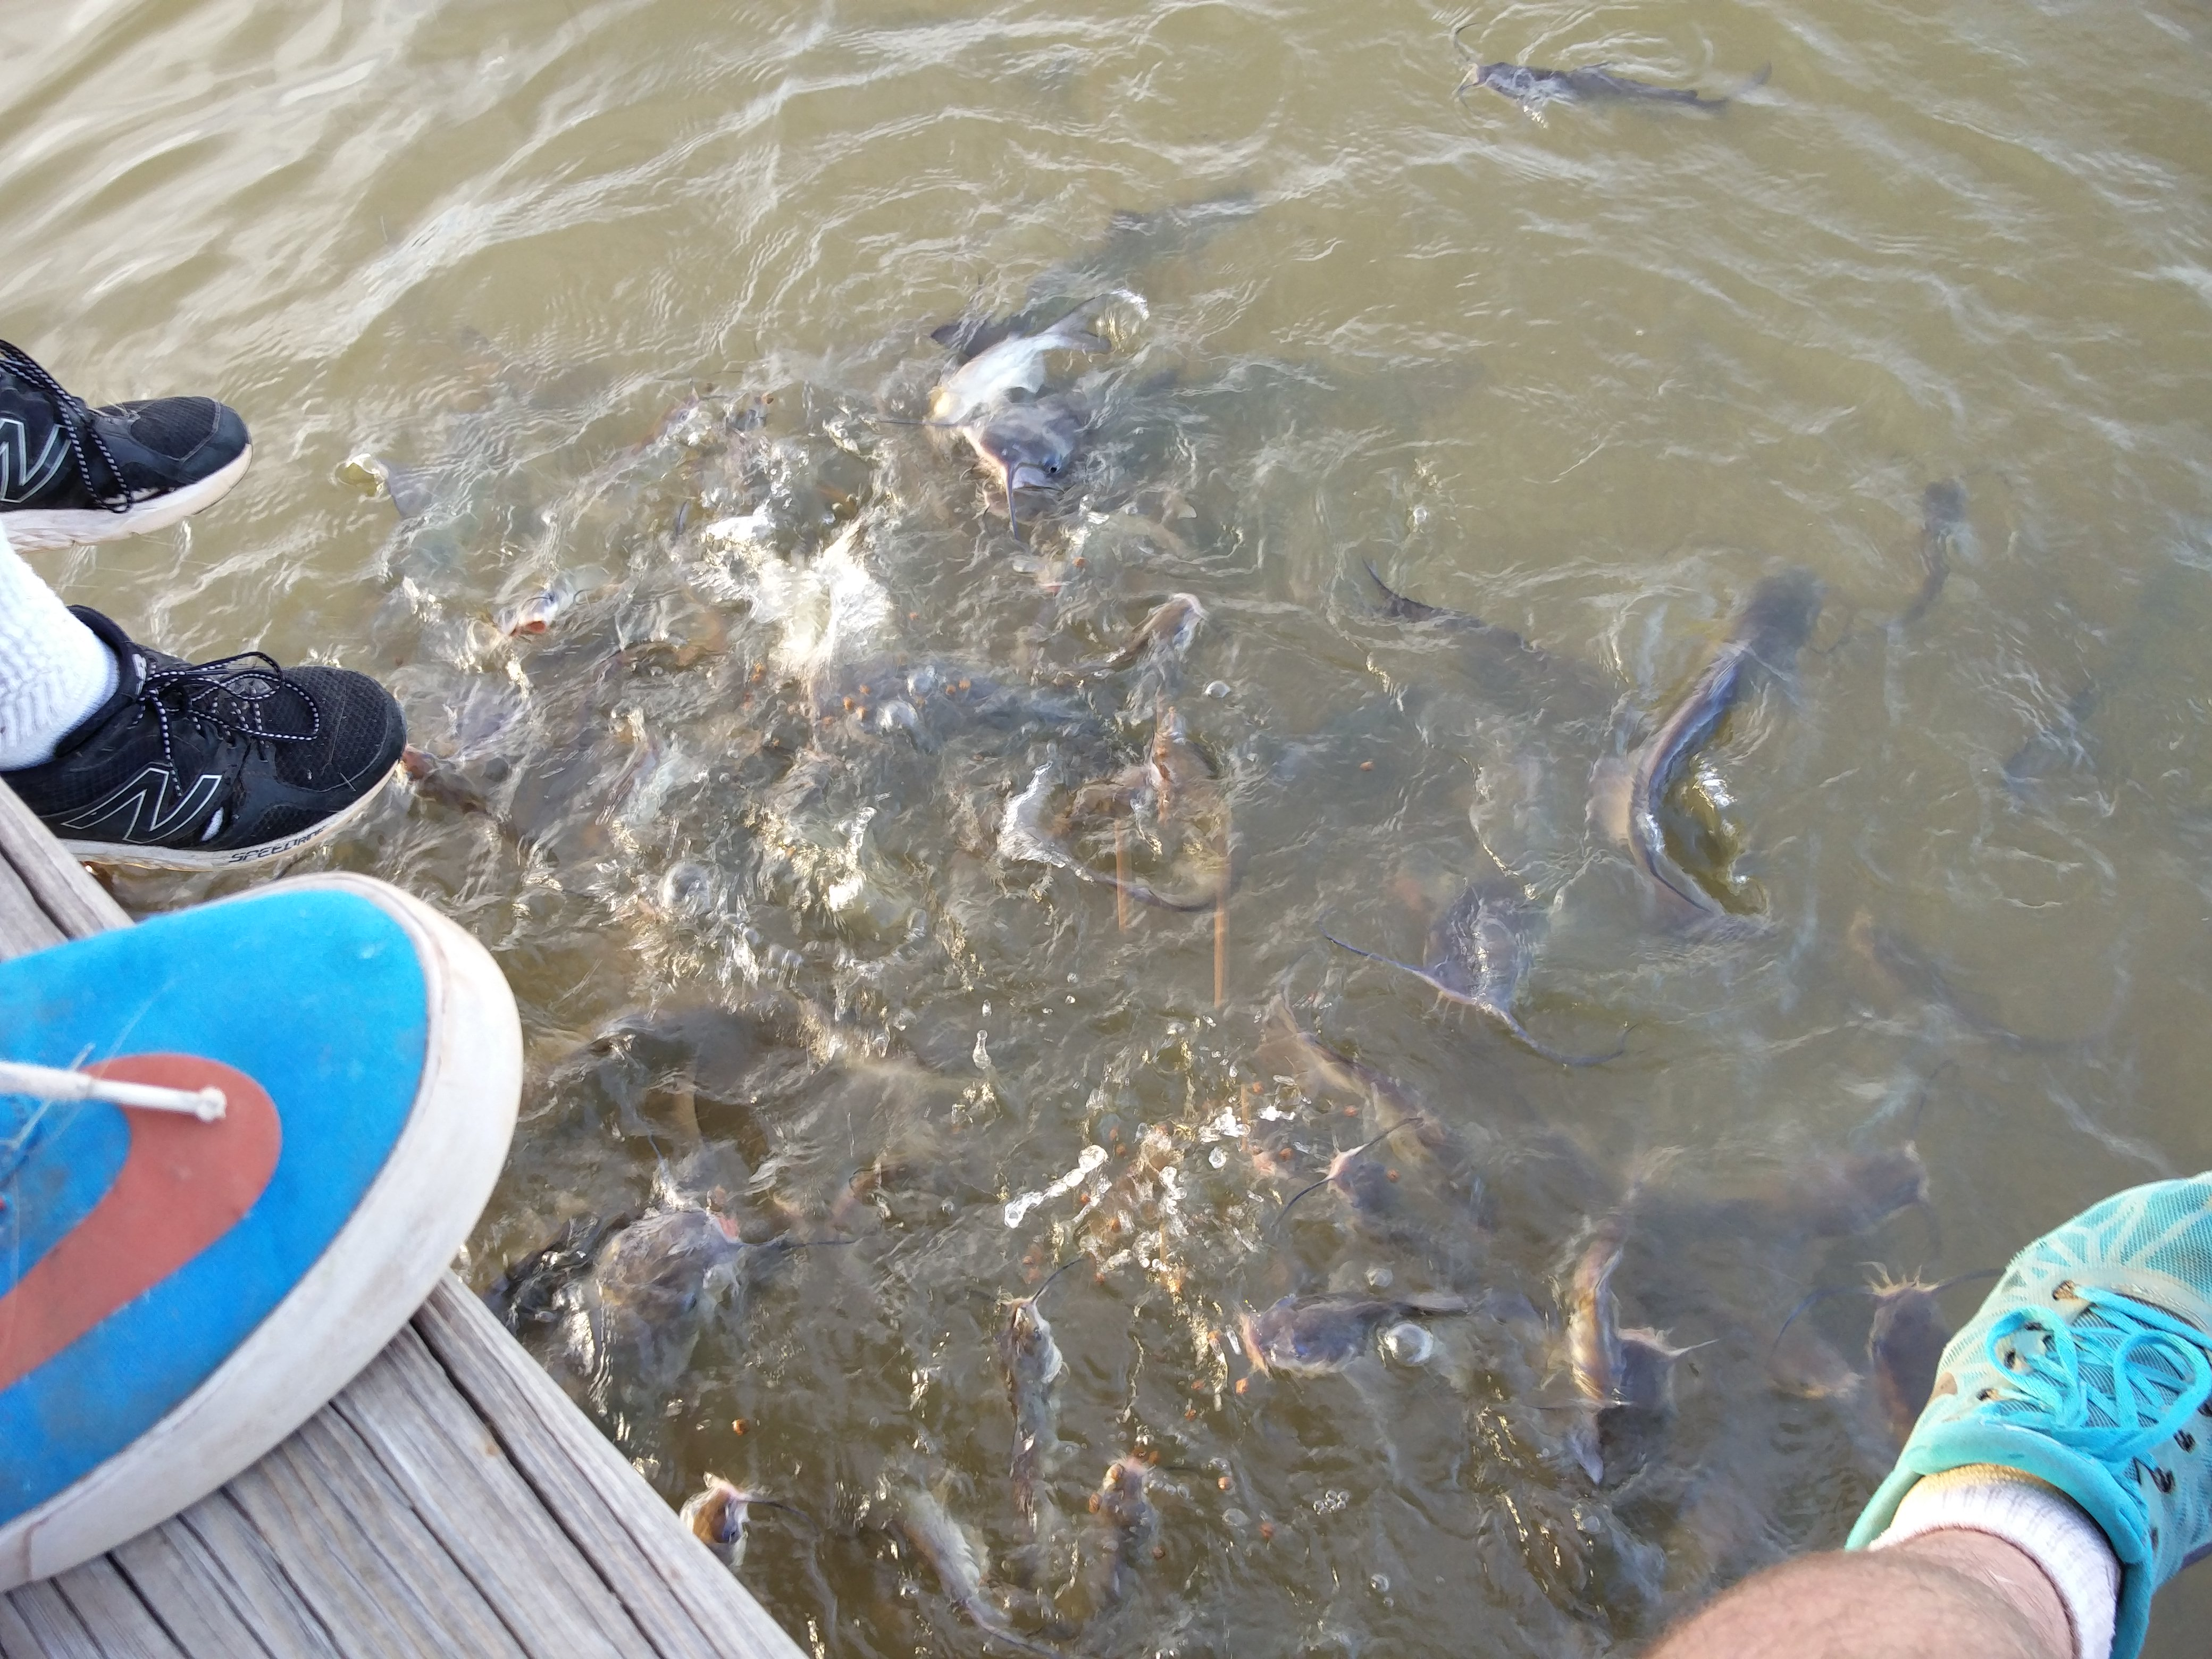 And then there's the ridiculous amount of catfish in the pond.